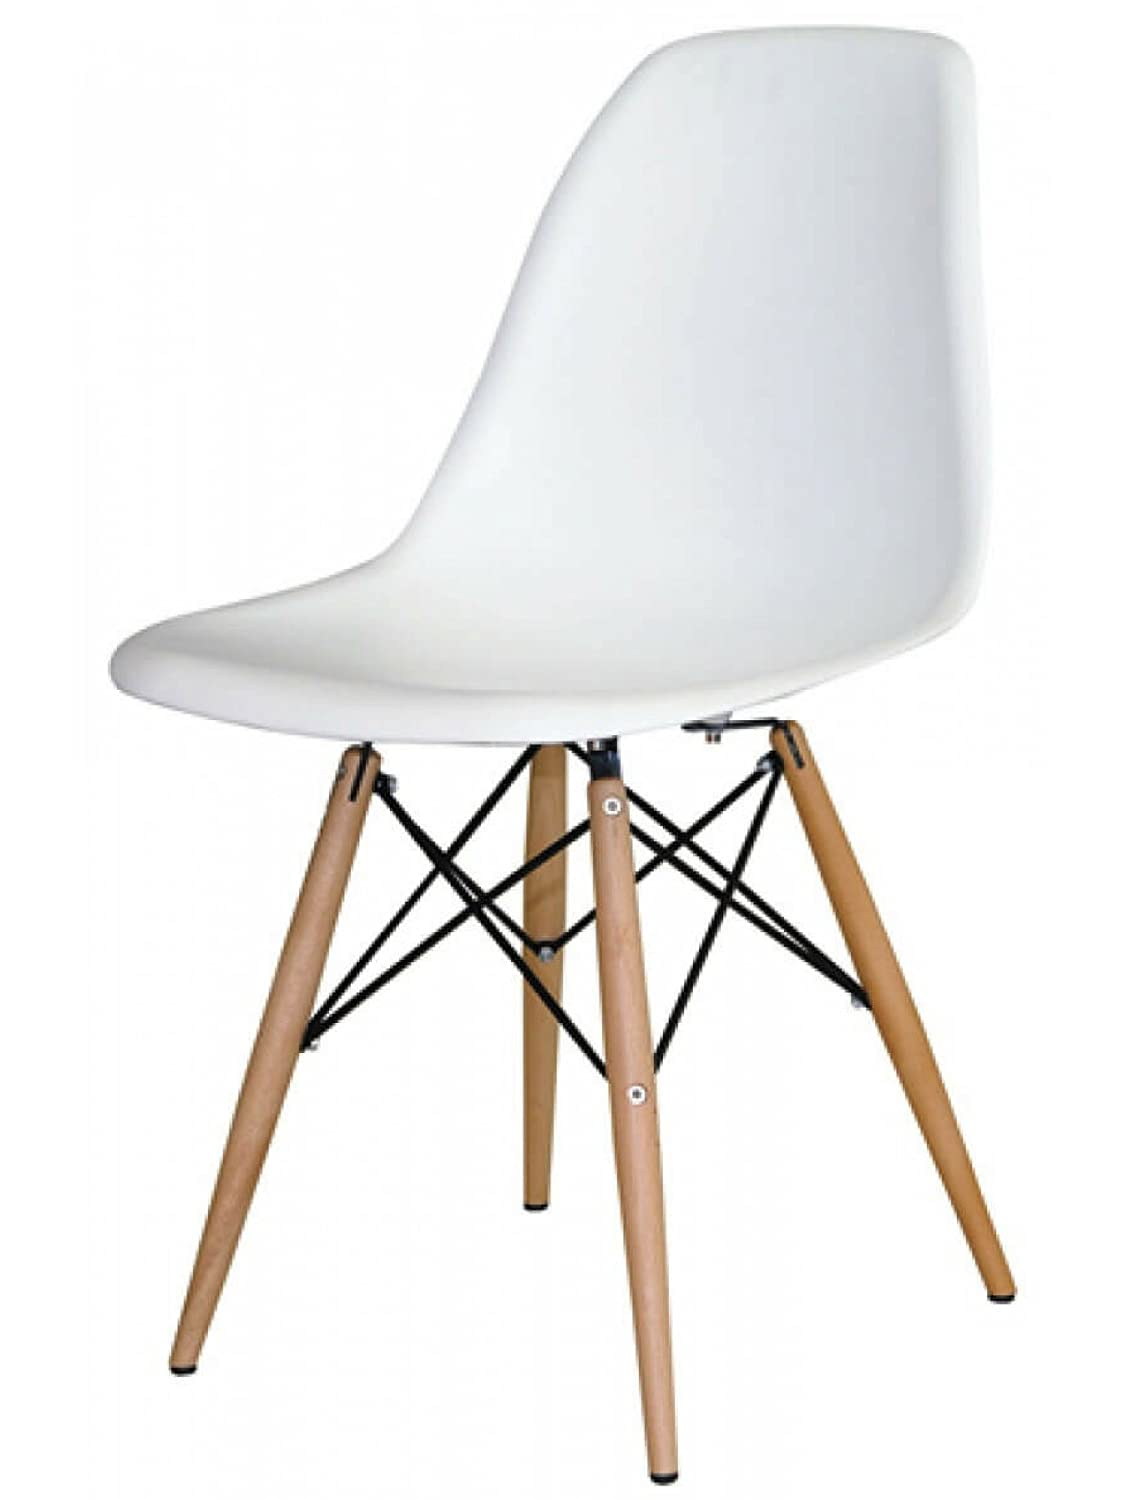 designer chair rocking category charles rar style chairs eames furniture fibreglass